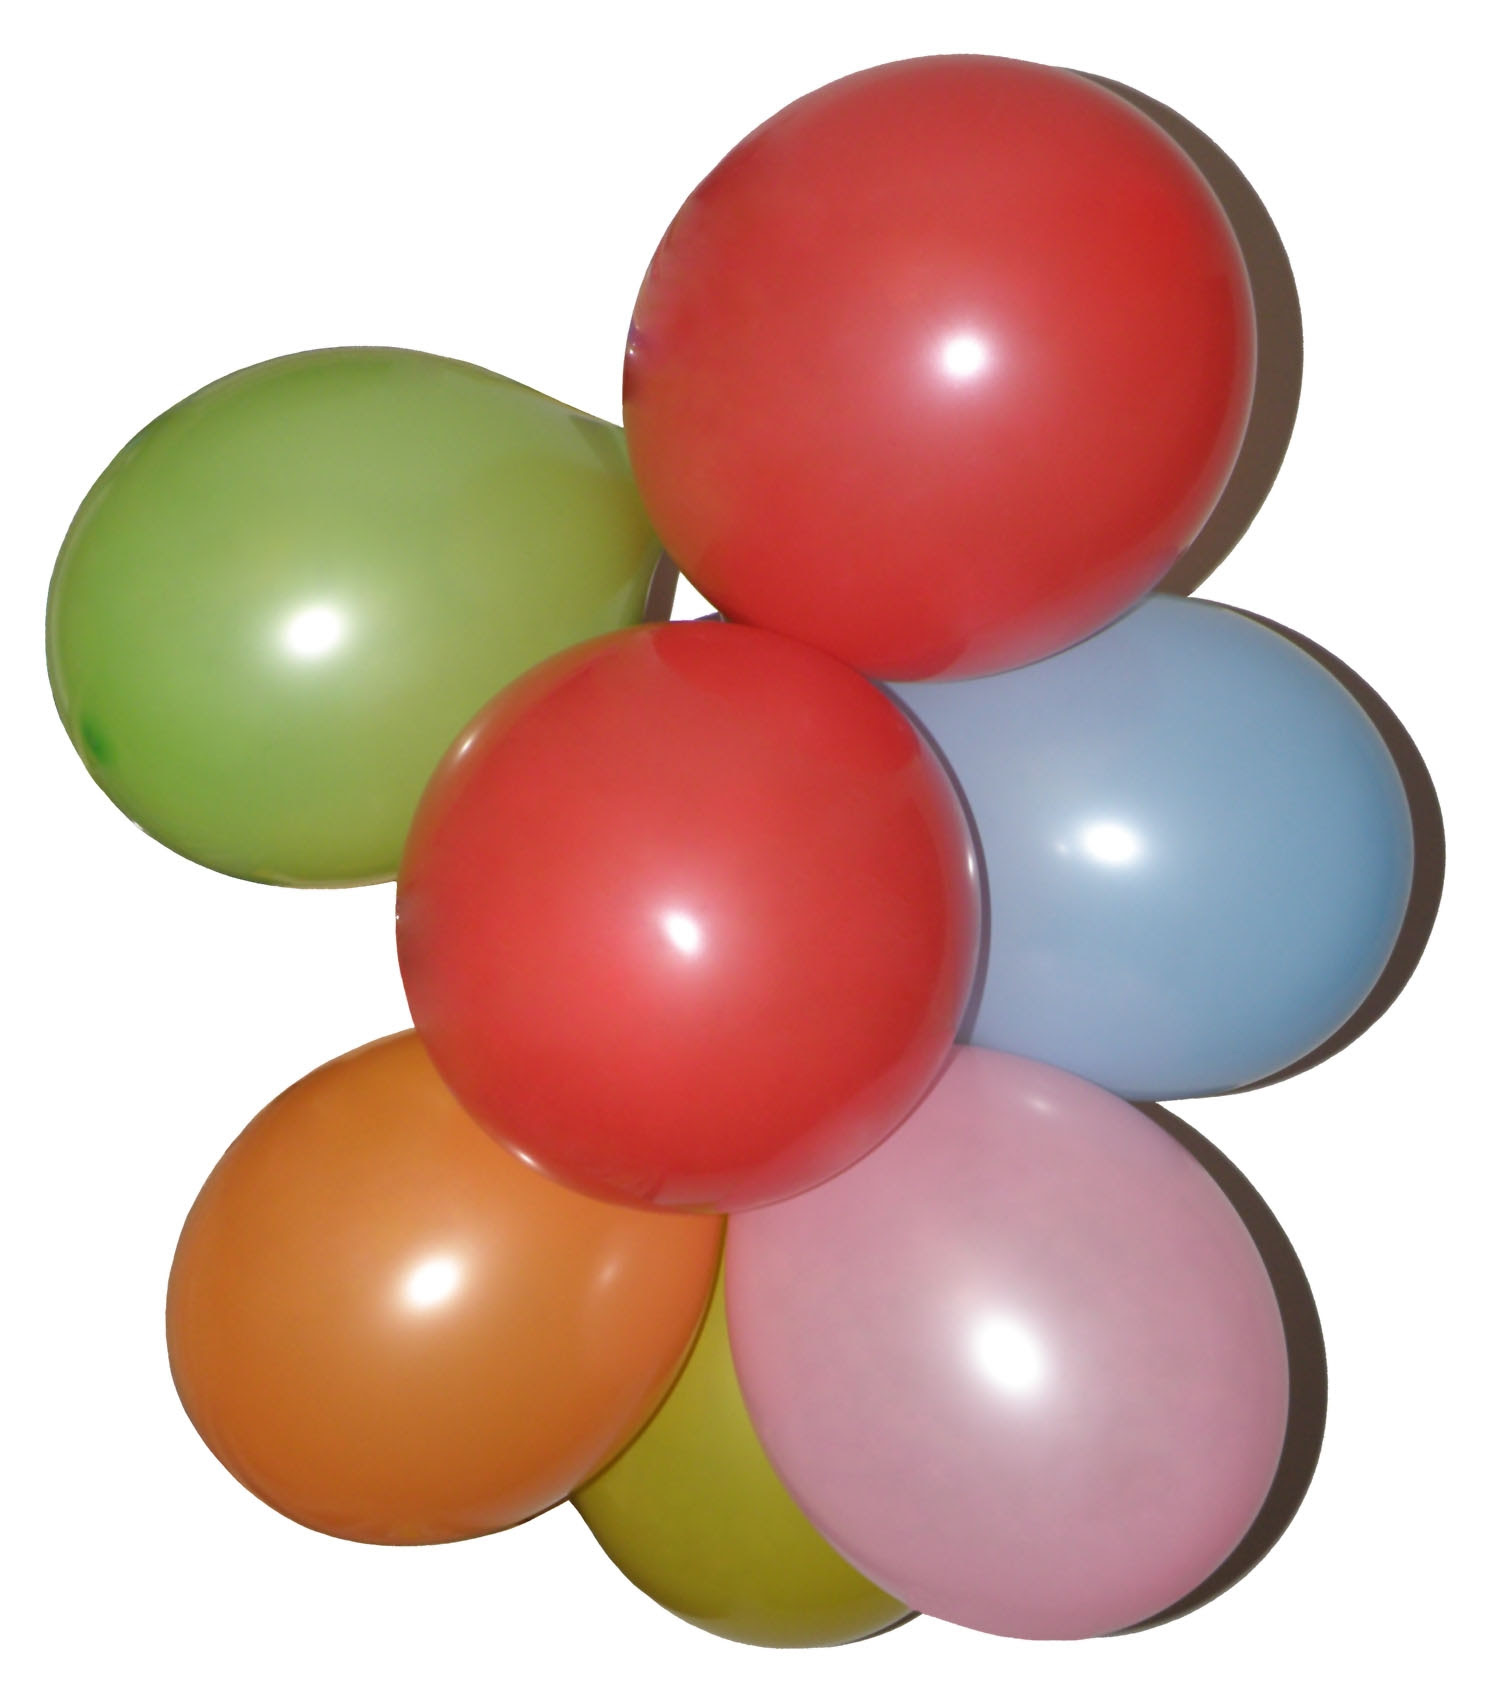 http://upload.wikimedia.org/wikipedia/commons/e/e6/Toy_balloons_(1).JPG